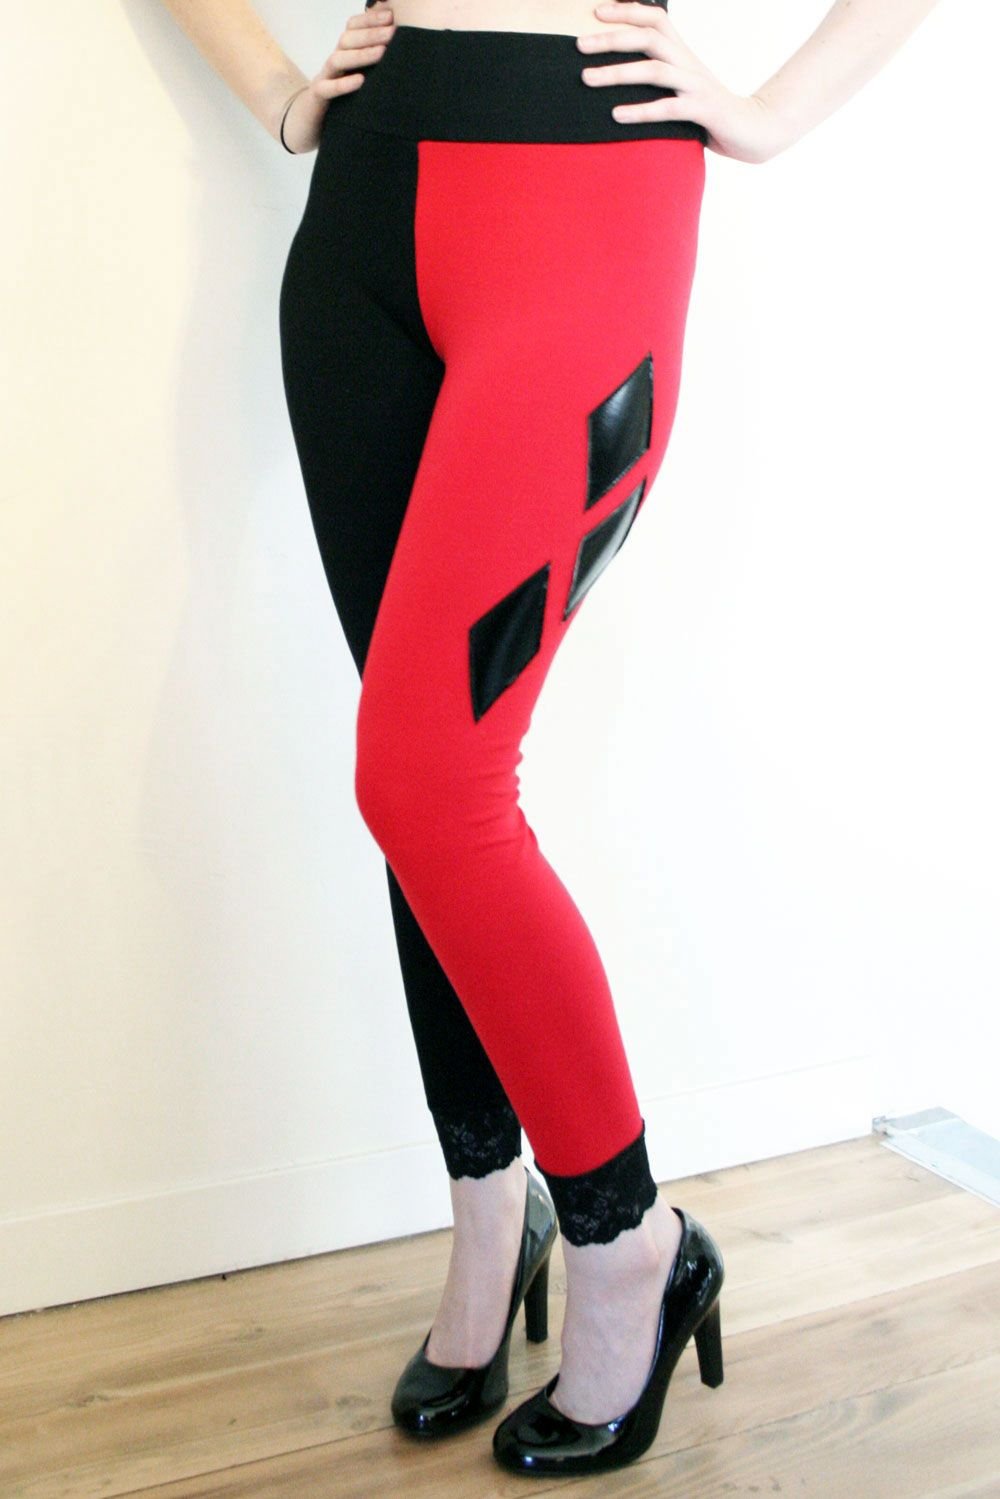 88f52dd79d9 Cotton Harley Quinn Diamond Leggings red black cosplay costume high-waisted plus  size lace trim handmade by Deranged Designs